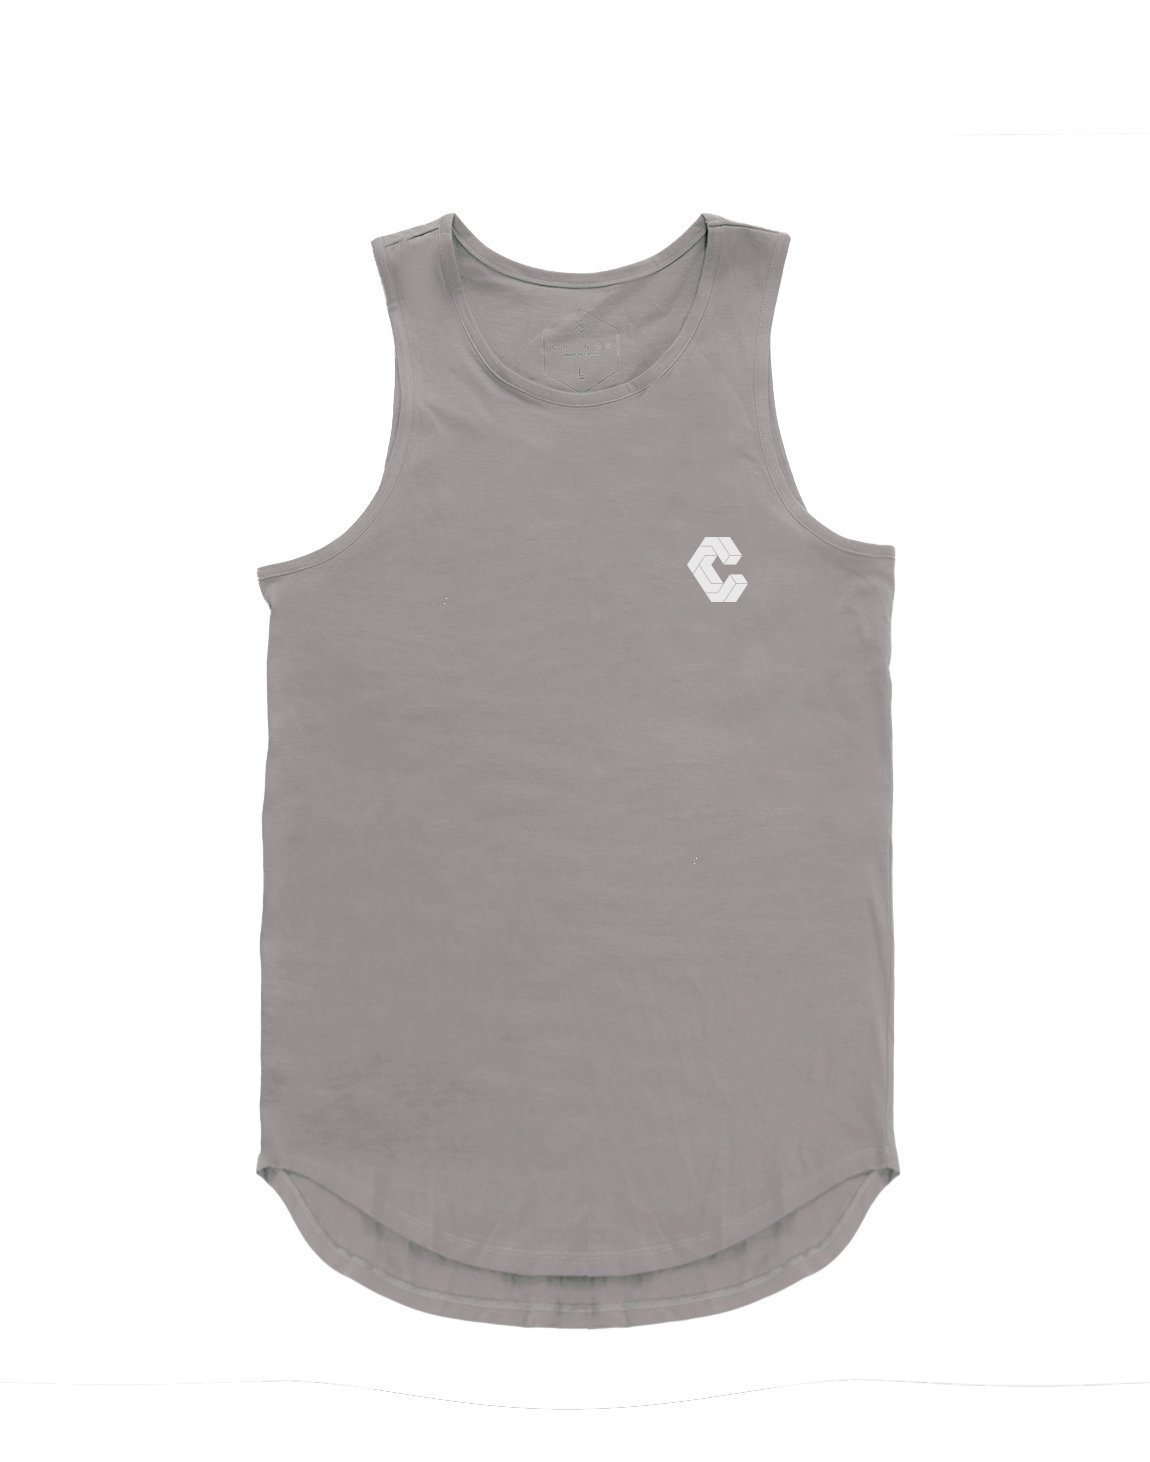 <img class='new_mark_img1' src='https://img.shop-pro.jp/img/new/icons1.gif' style='border:none;display:inline;margin:0px;padding:0px;width:auto;' />CRONOS BACK BOX LOGO TANK TOP 【LIGHT GRAY】